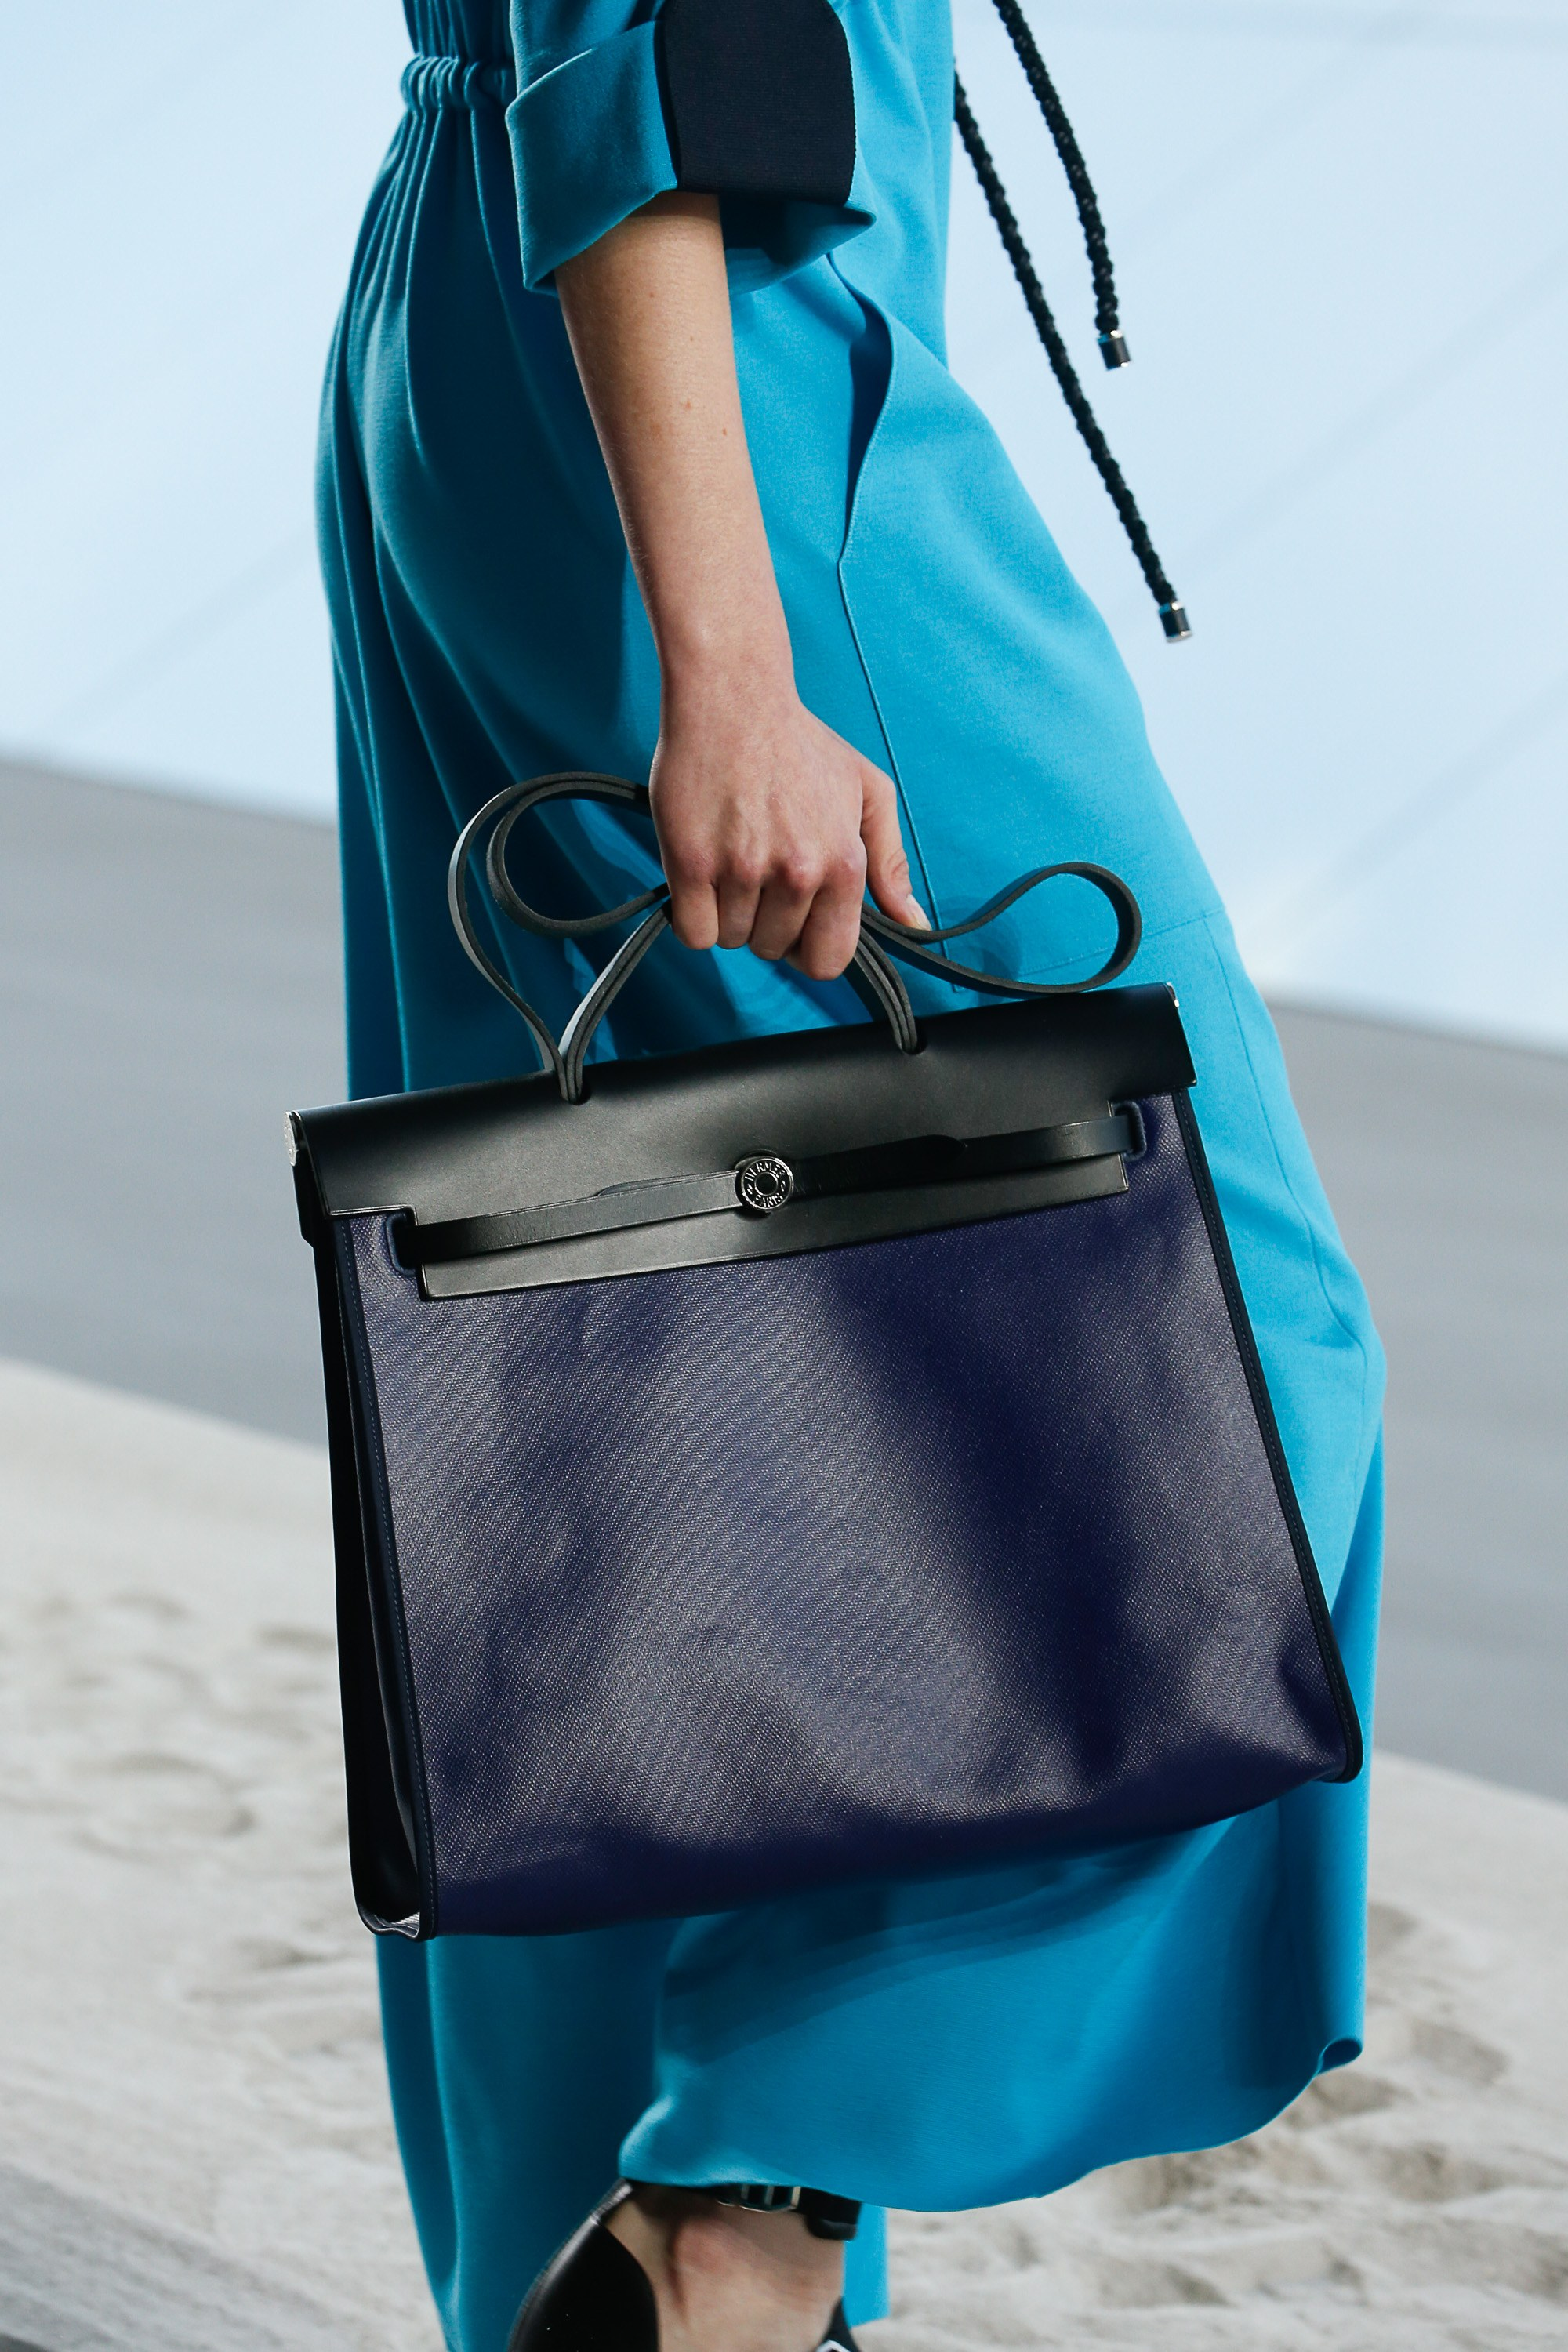 hermes spring summer runway bag collection spotted